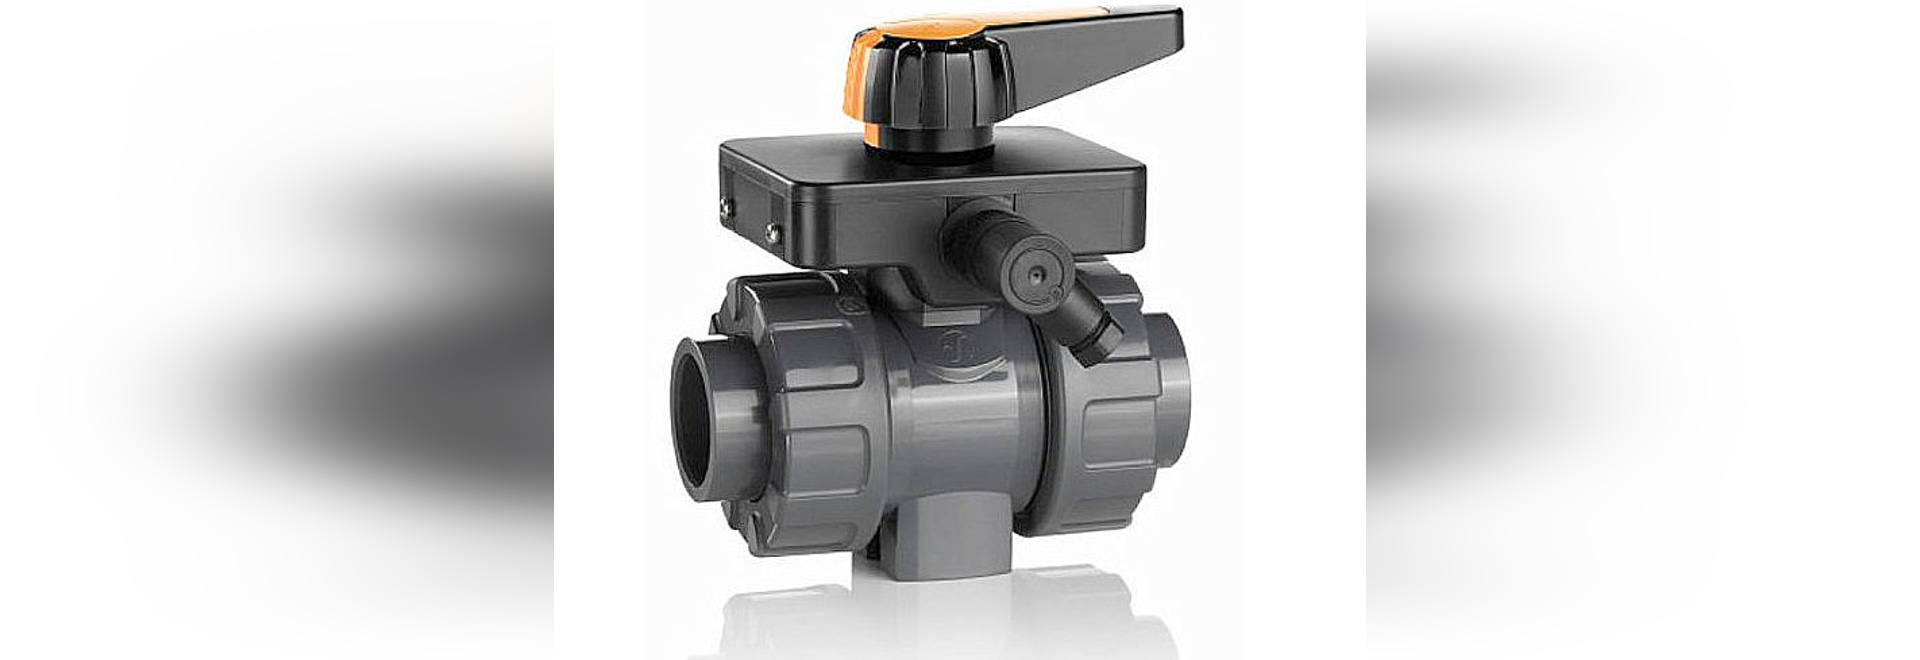 Product launch:ASV Stübbe introduces the new ball valve C200 onto the market